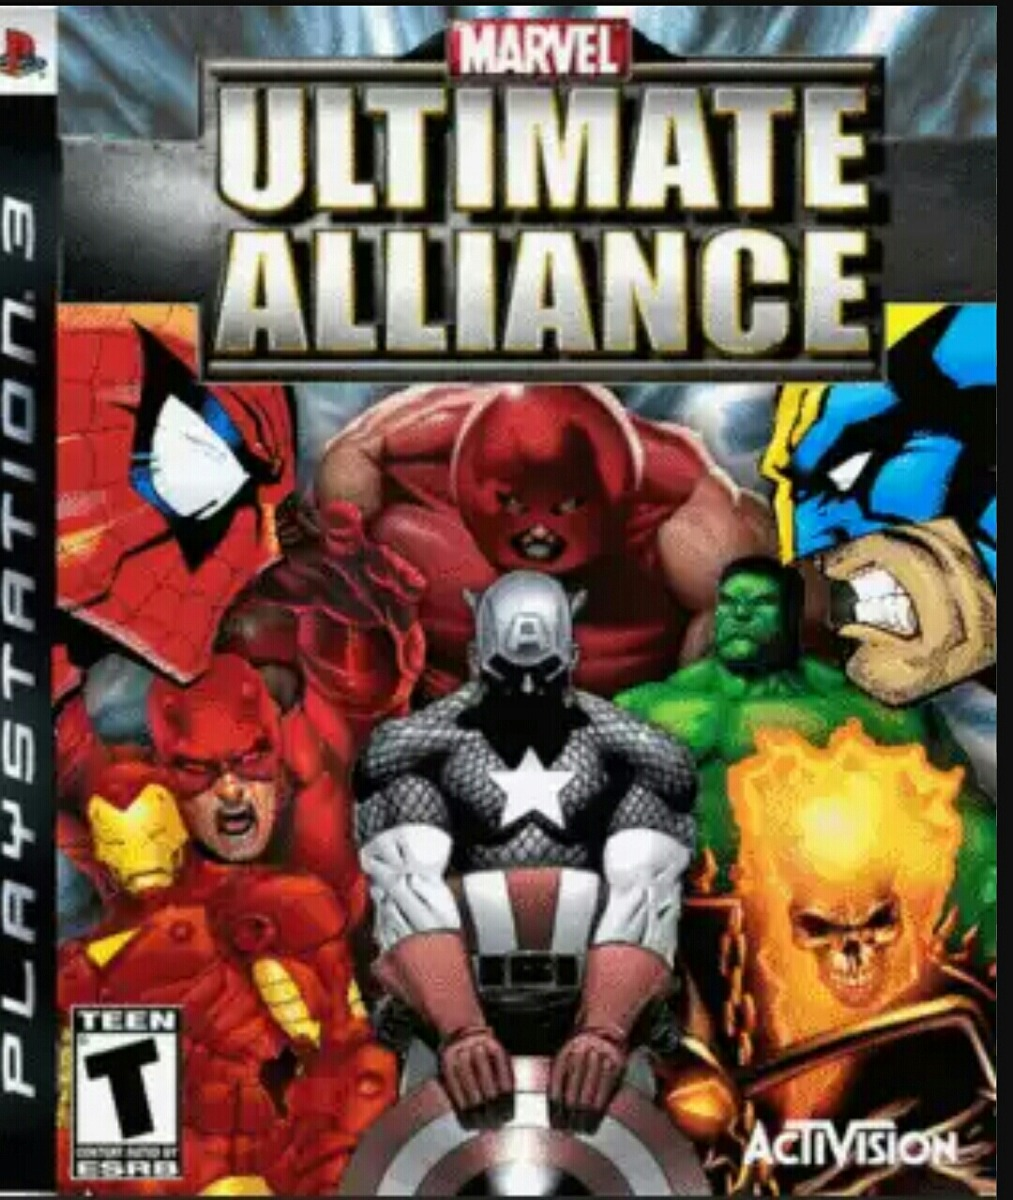 Marvel Ultimate Alliance Juego Ps3 Fisico Para Ninos 12 Cuot